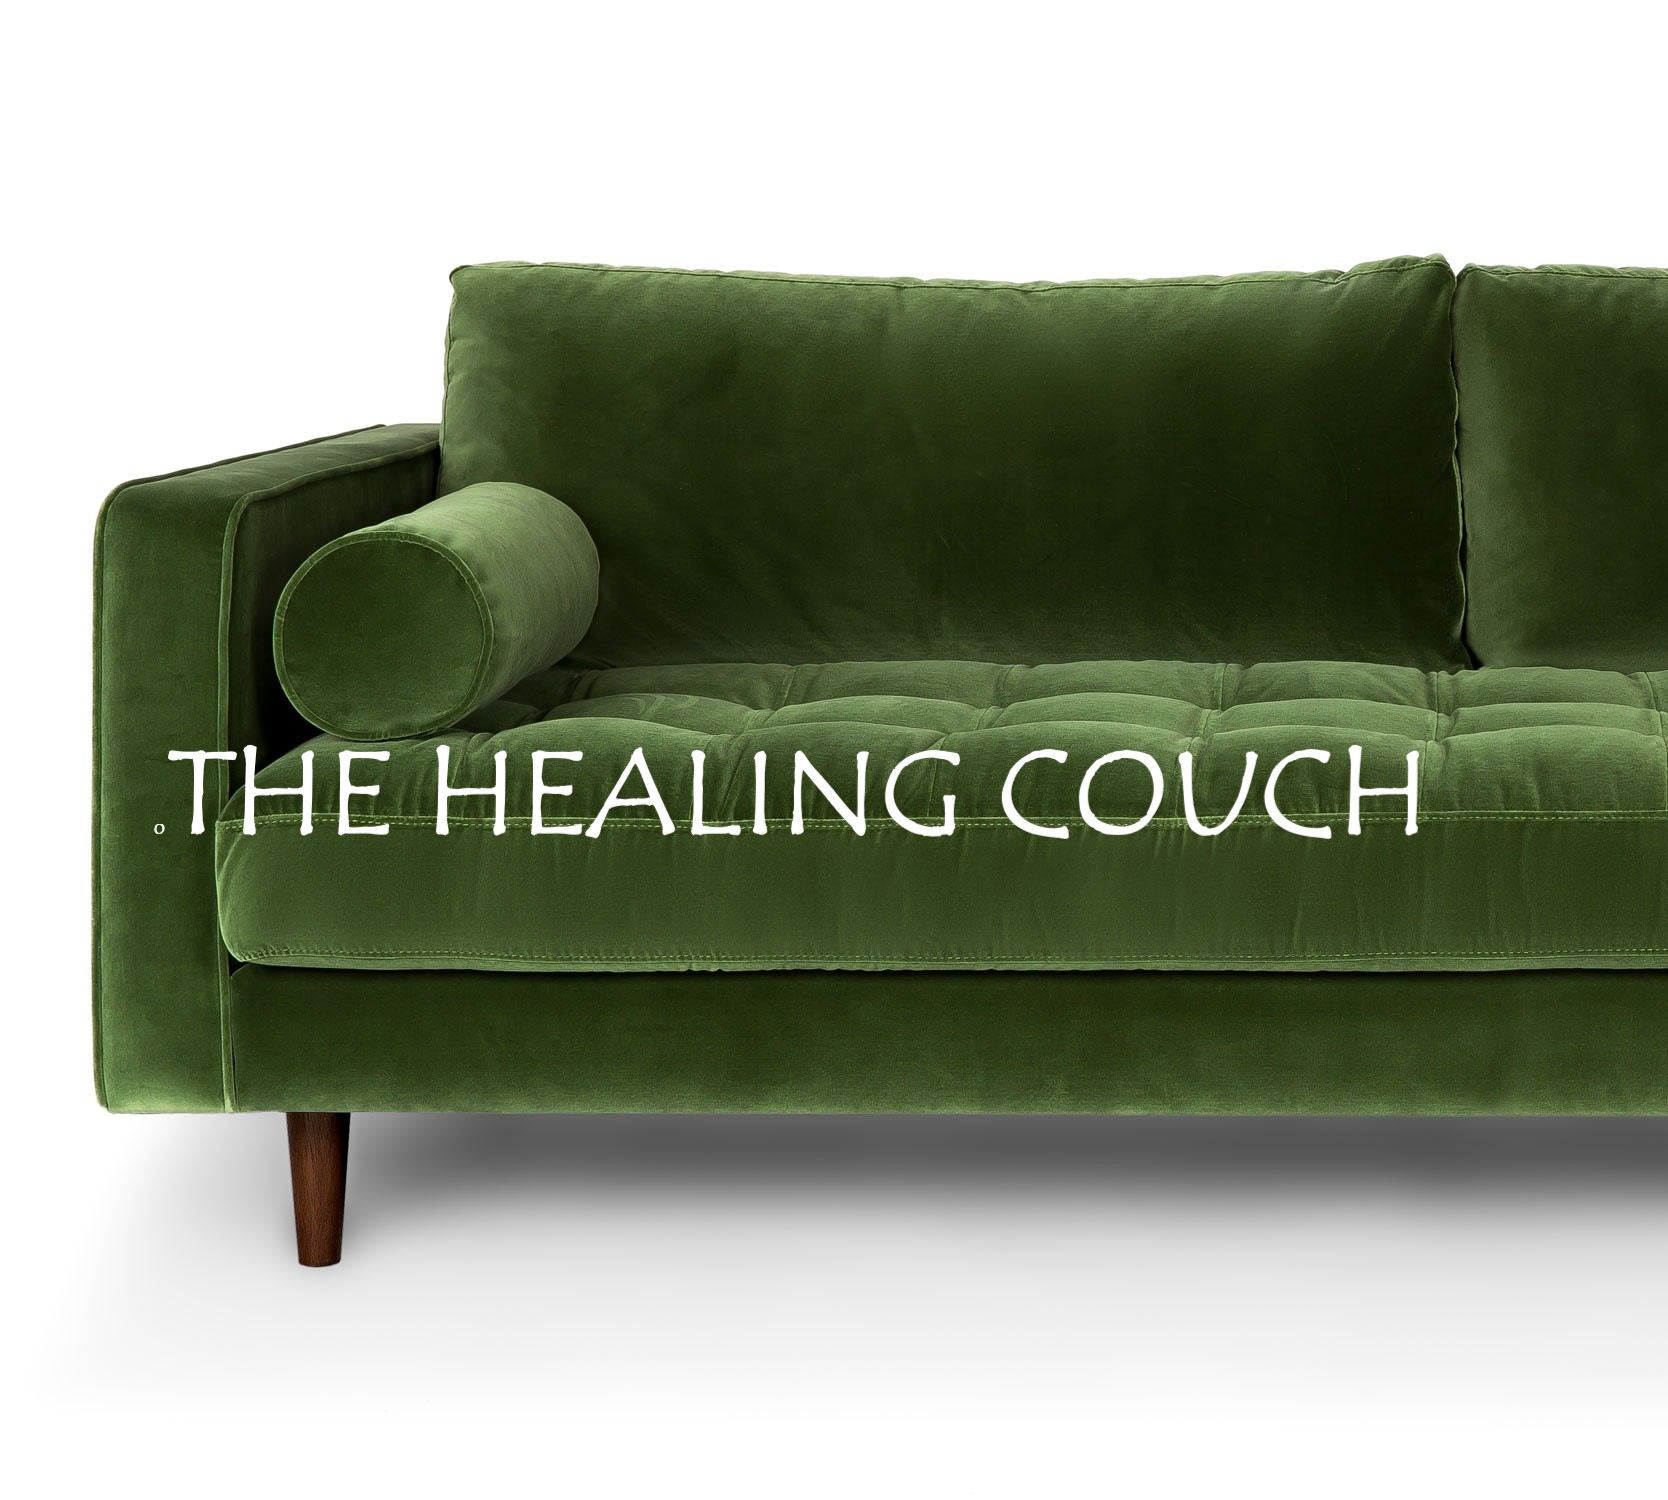 The Healing Couch